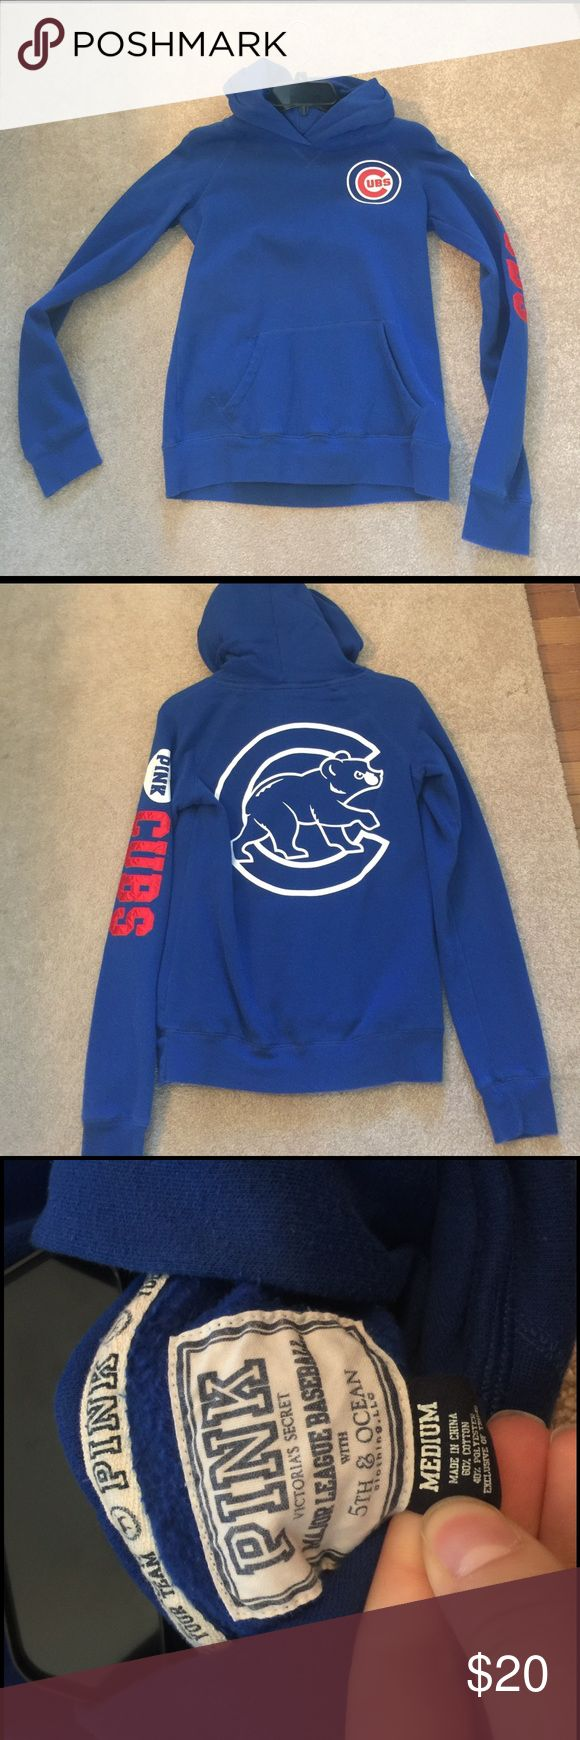 PINK Chicago cubs hoodie Size medium PINK Chicago Cuba hoodie. Has been worn but still has some life left to it. It is super comfy and really cute! PINK Victoria's Secret Tops Sweatshirts & Hoodies